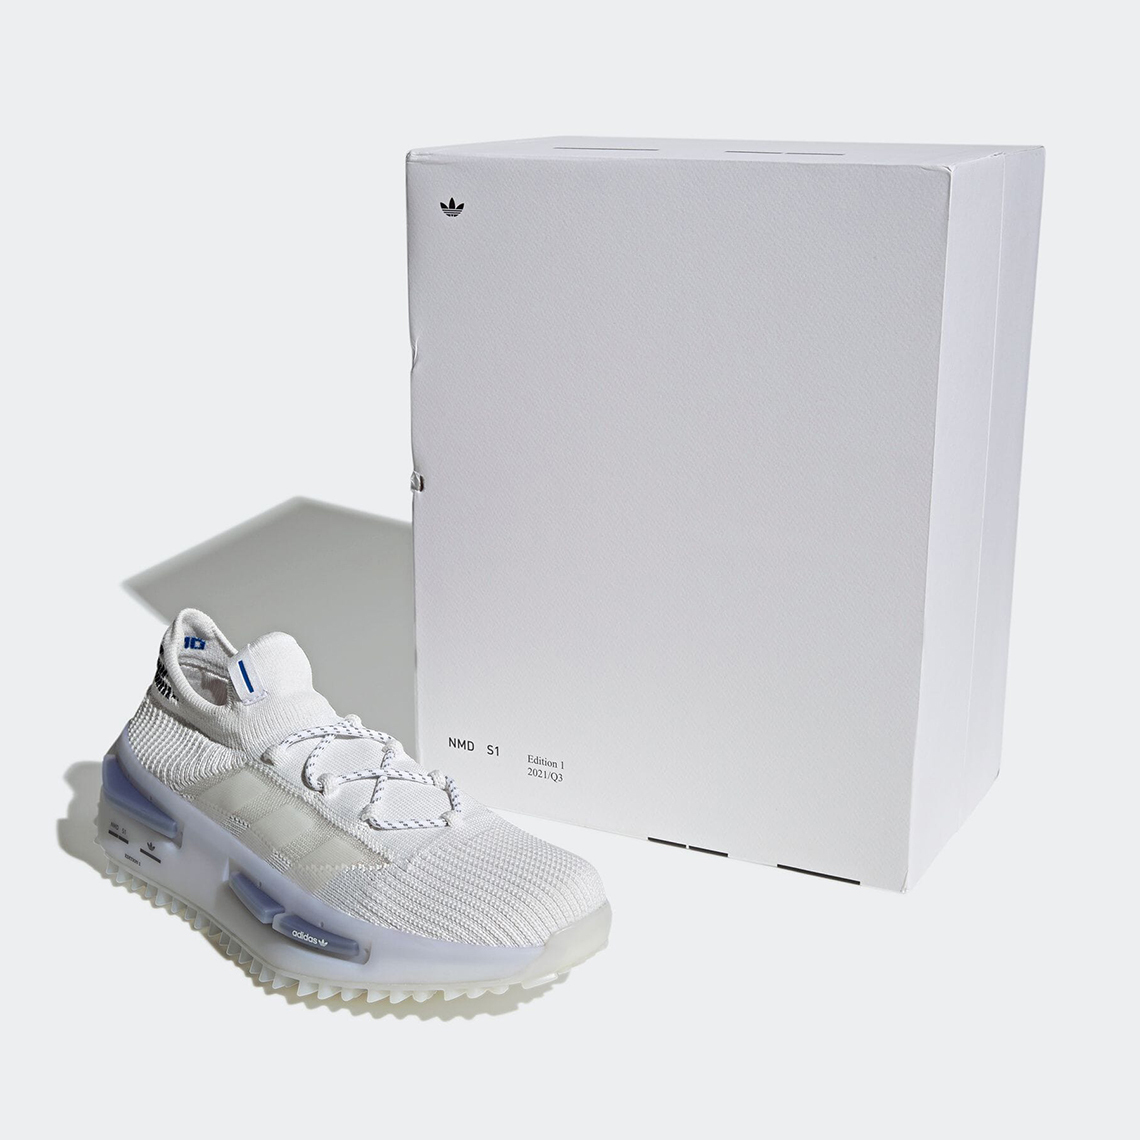 adidas NMD S1 ''White'' - Edition 1 - GZ7900